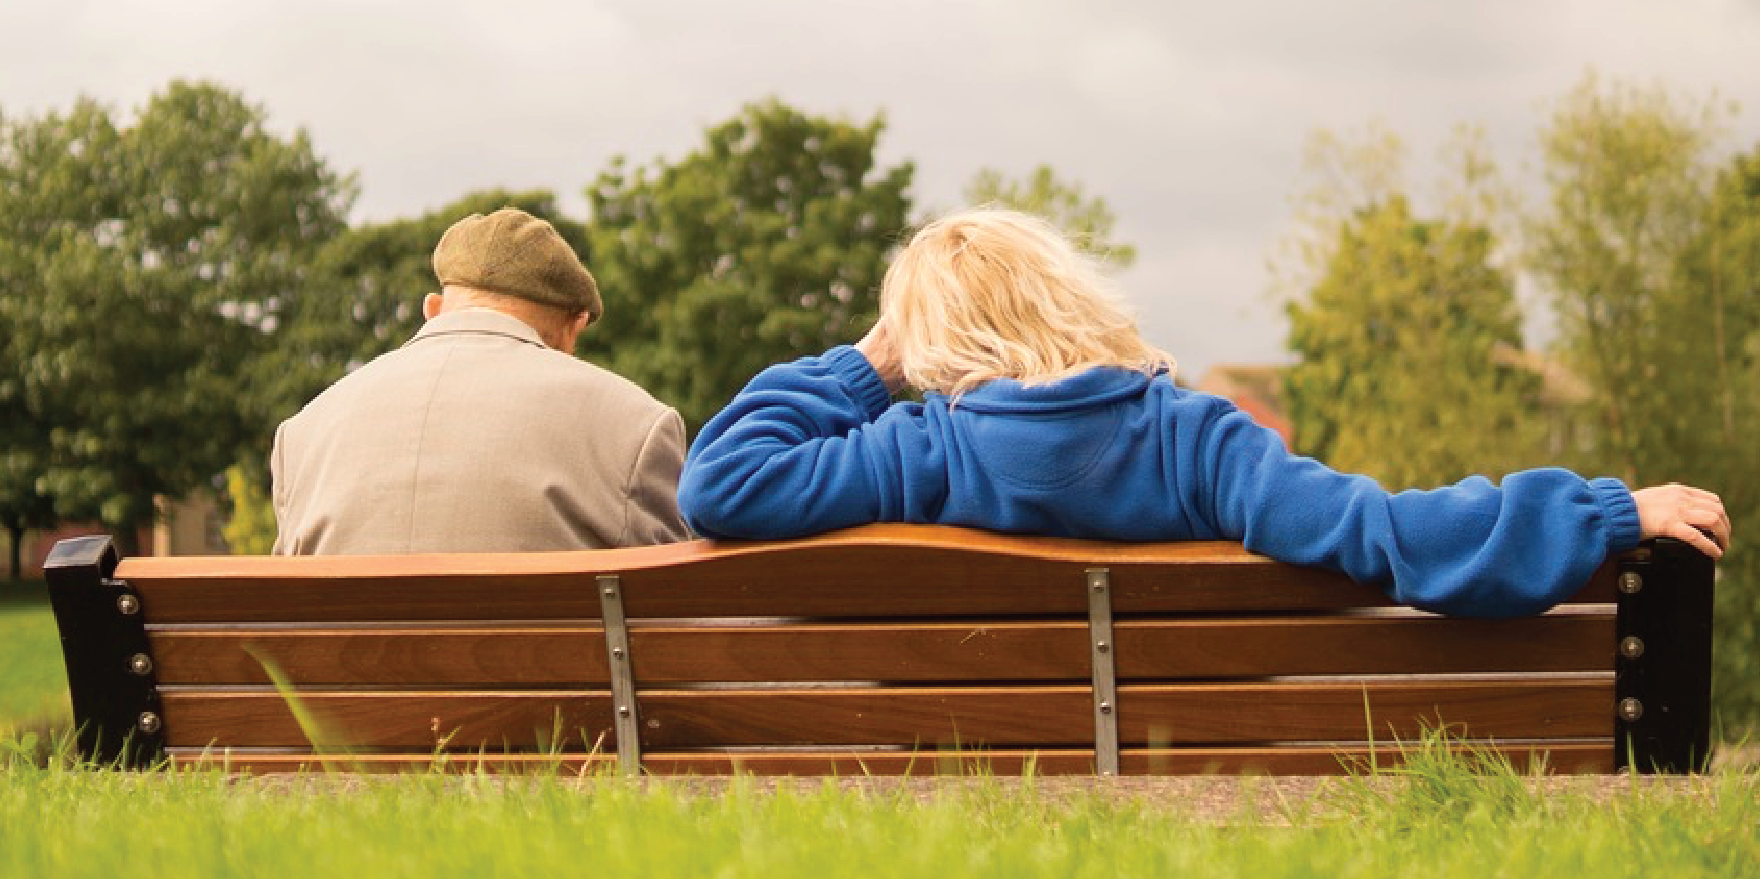 Couple Resting on Bench